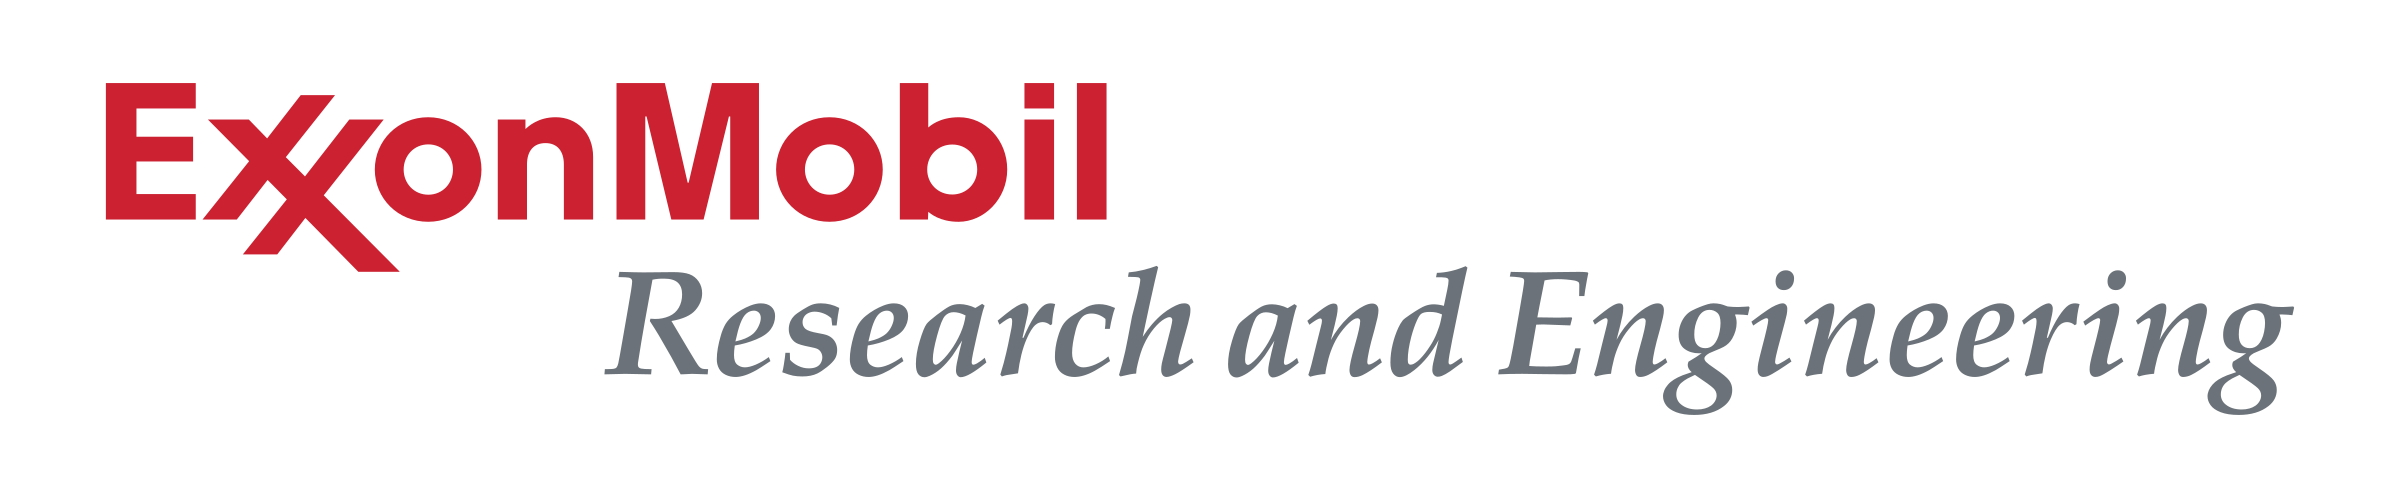 EXXONMOBIL RESEARCH & ENGINEERING CO.